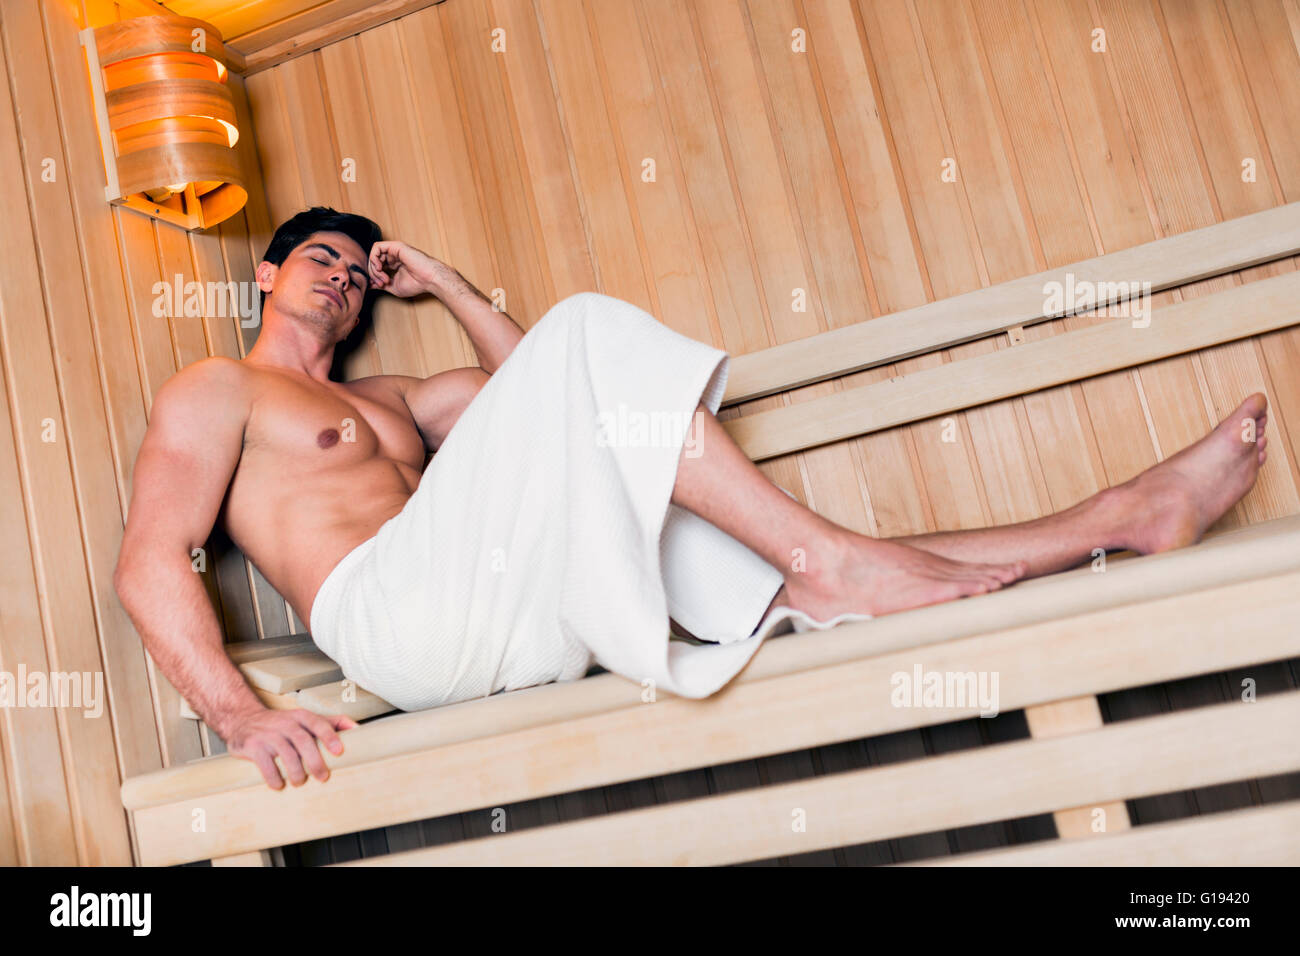 man towel around waist stockfotos man towel around waist bilder alamy. Black Bedroom Furniture Sets. Home Design Ideas